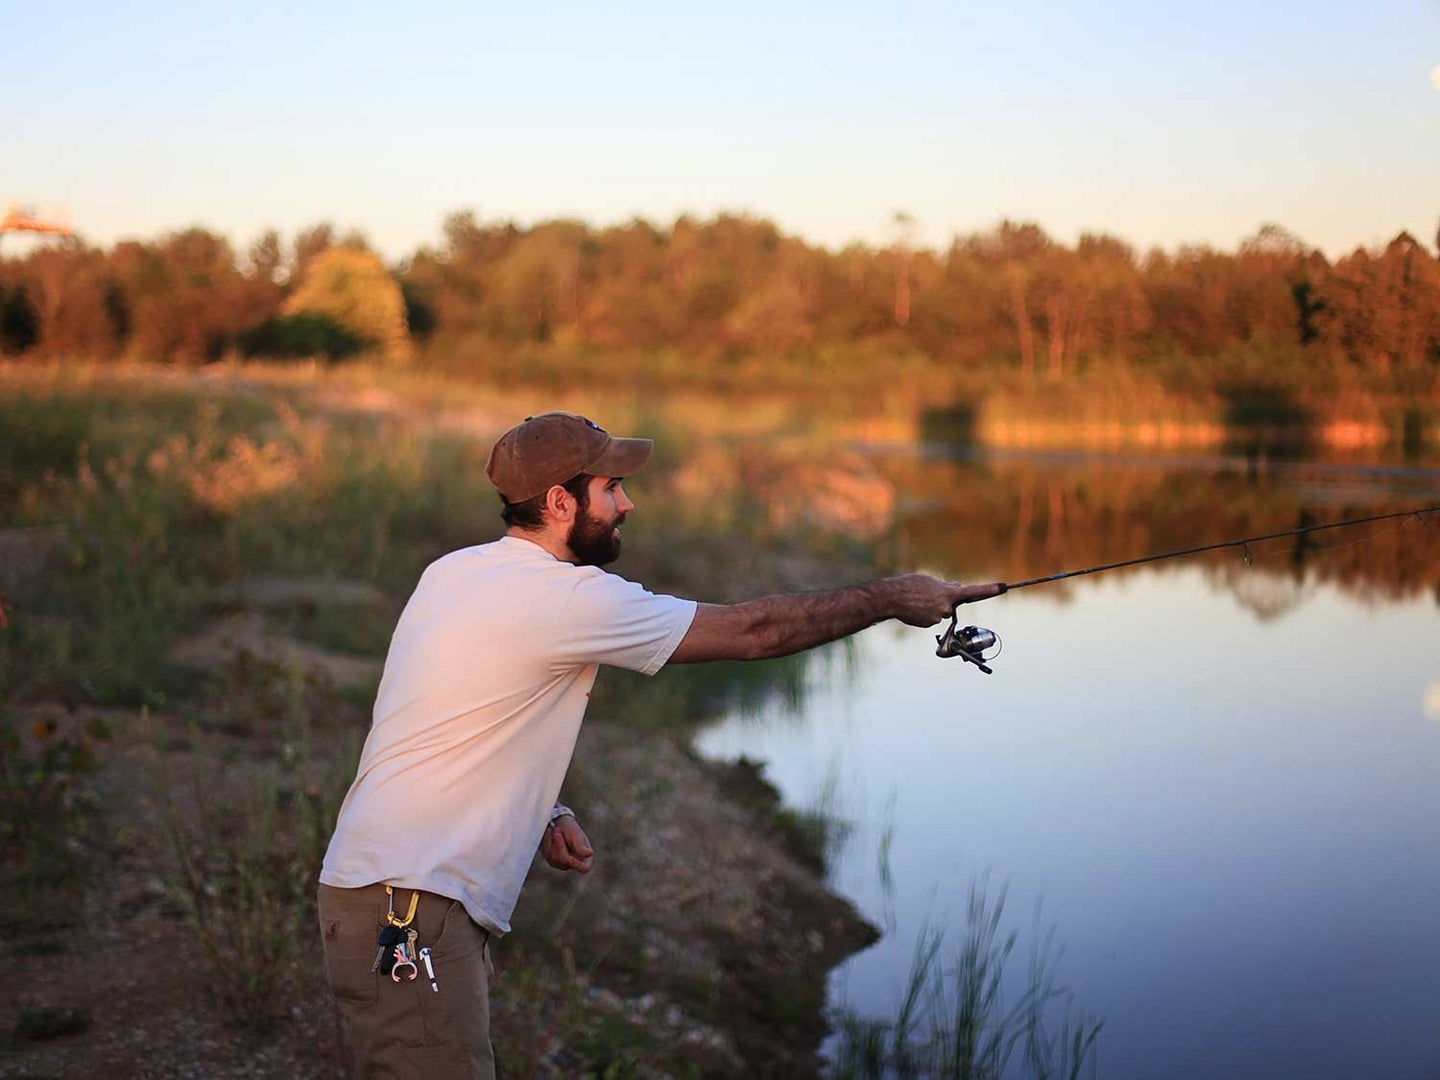 Man fishing with spinning reel.